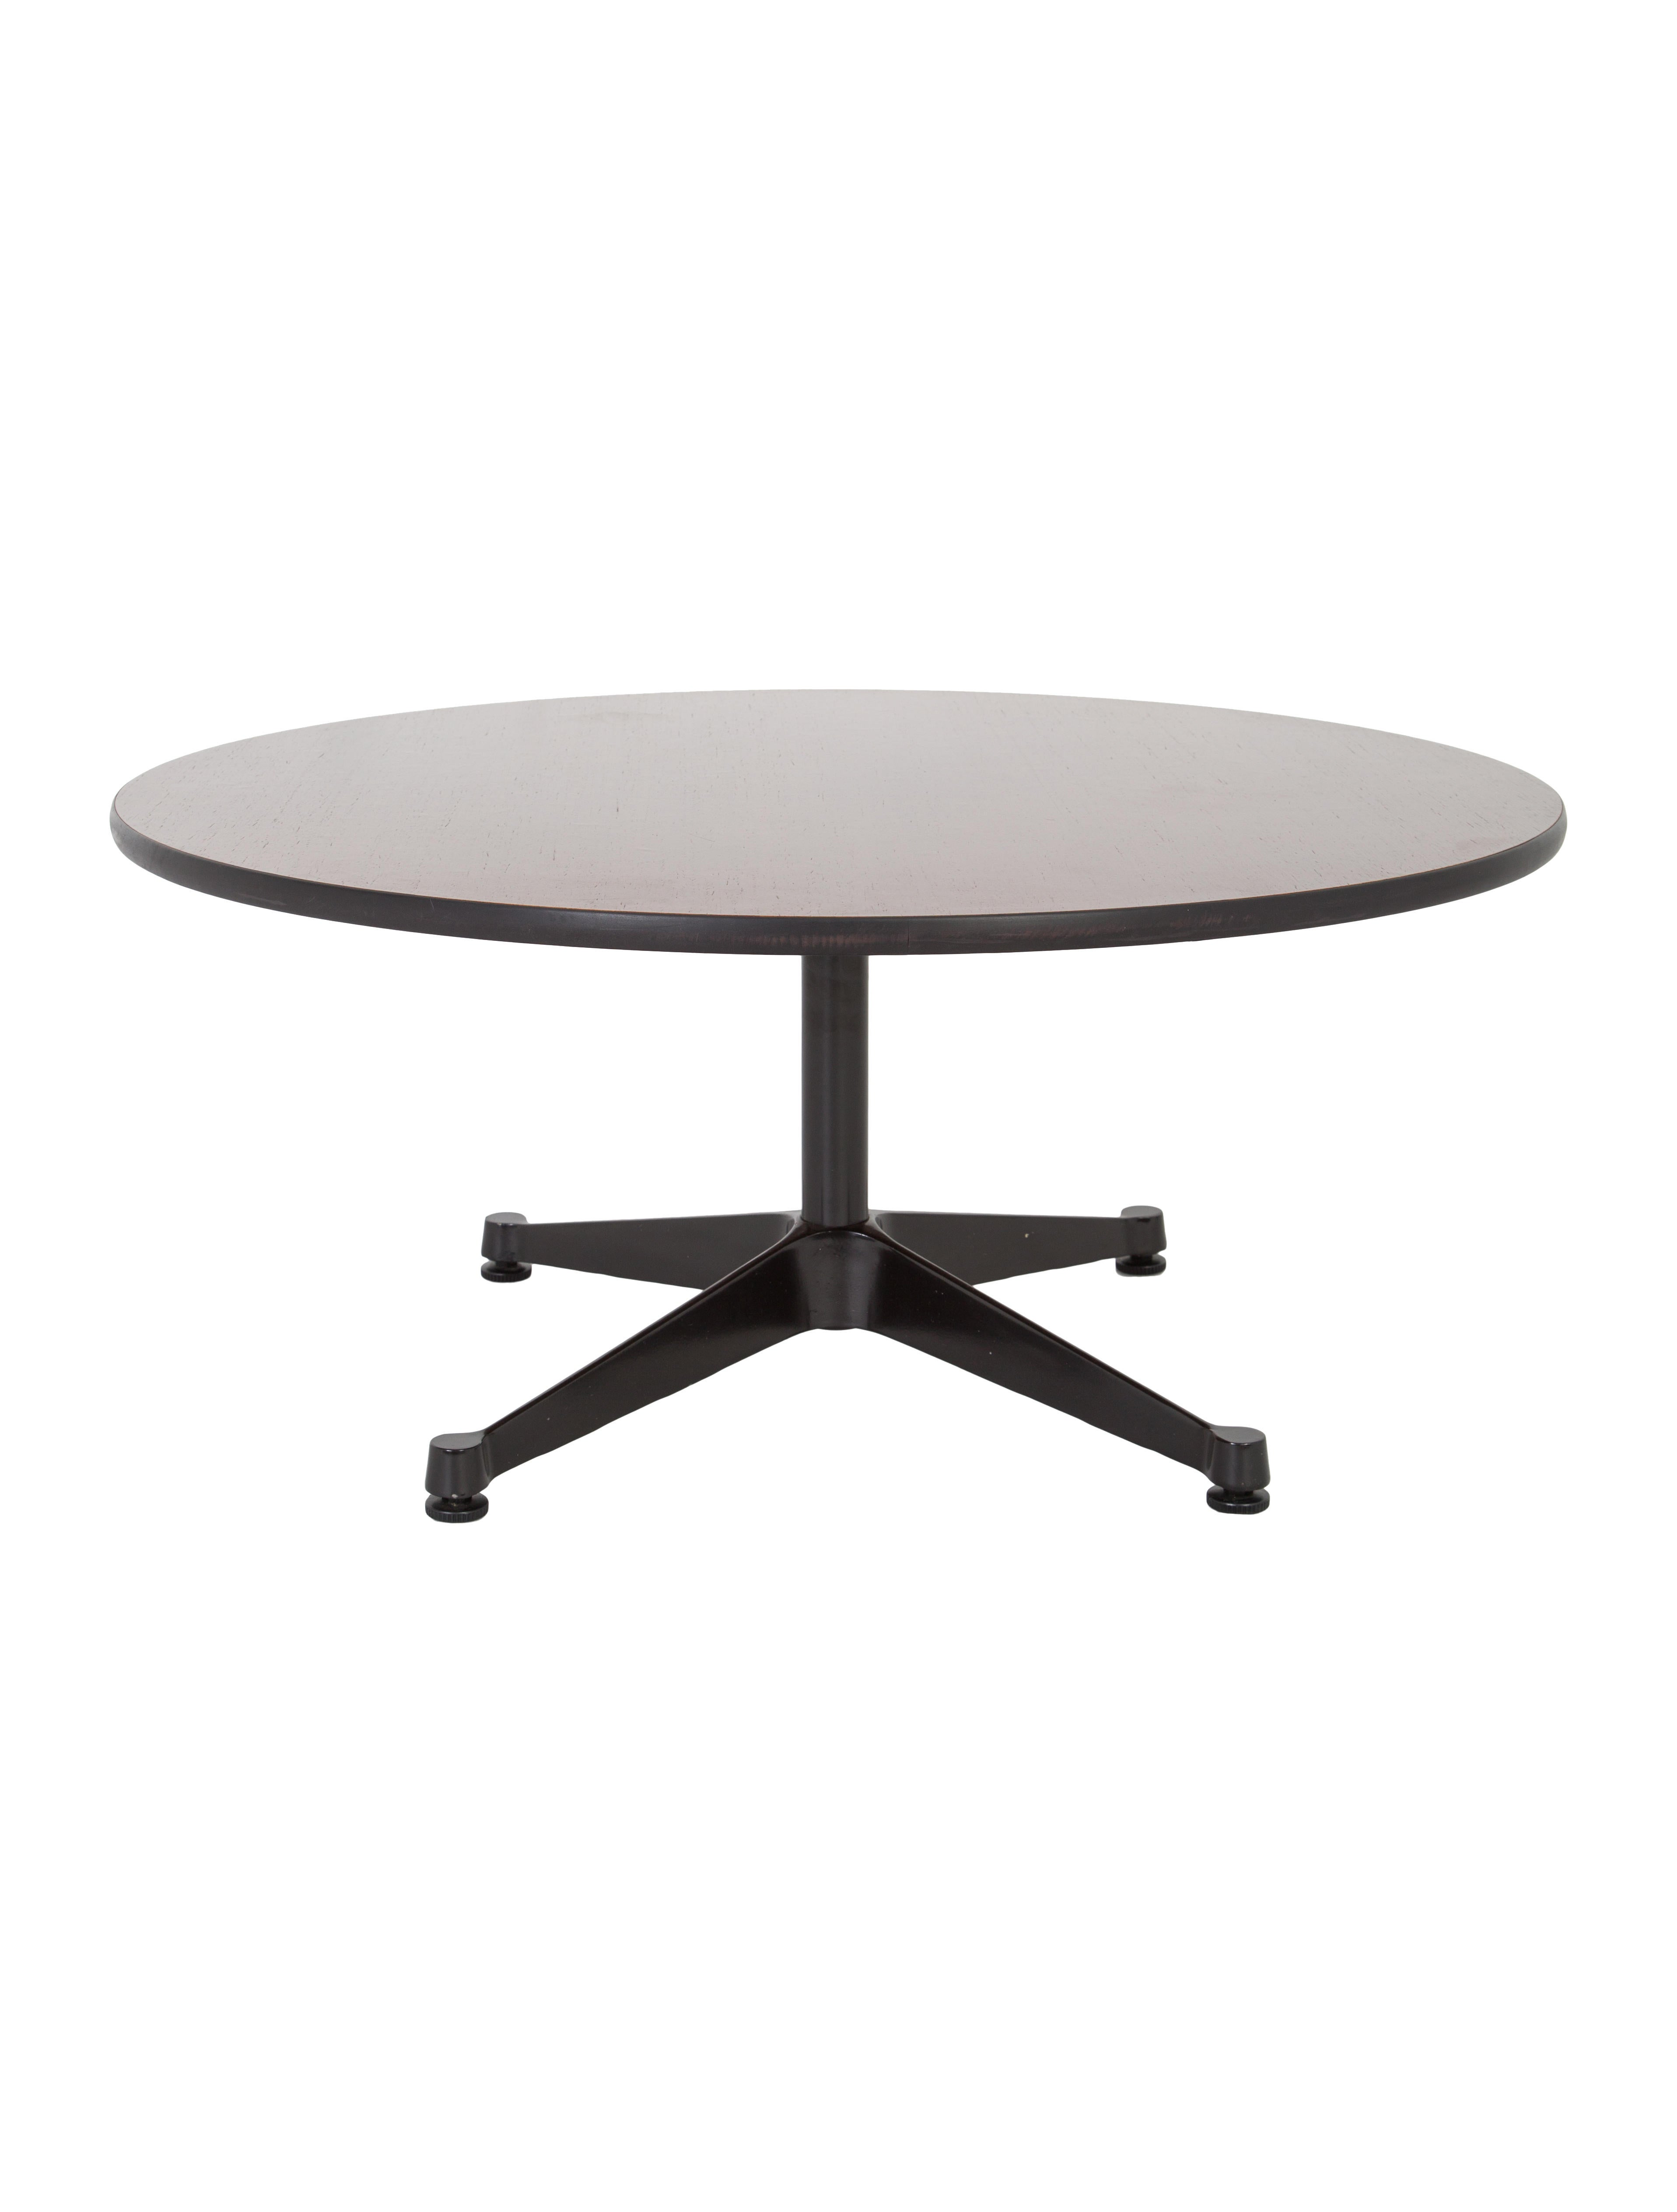 Herman Miller Eames Coffee Table Furniture Hrmil20057 The Realreal